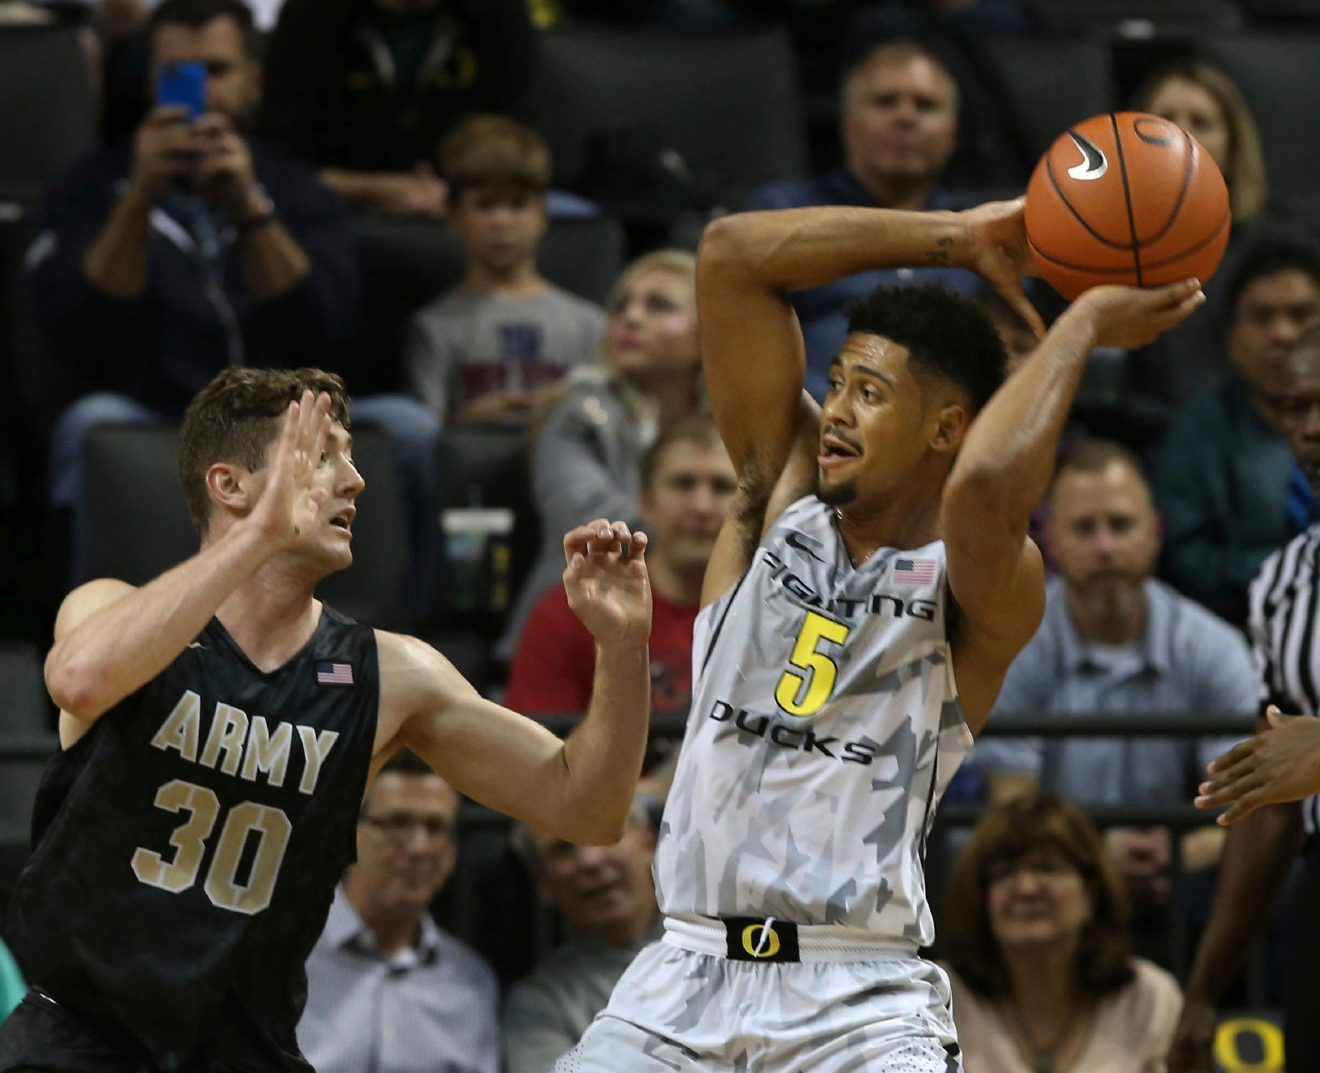 Army's Jordan Fox, left, guards Oregon's Tyler Dorsey during the second half of an NCAA college basketball game Friday, Nov. 11, 2016, in Eugene, Ore. Oregon won 91-77.  (AP Photo/Chris Pietsch)